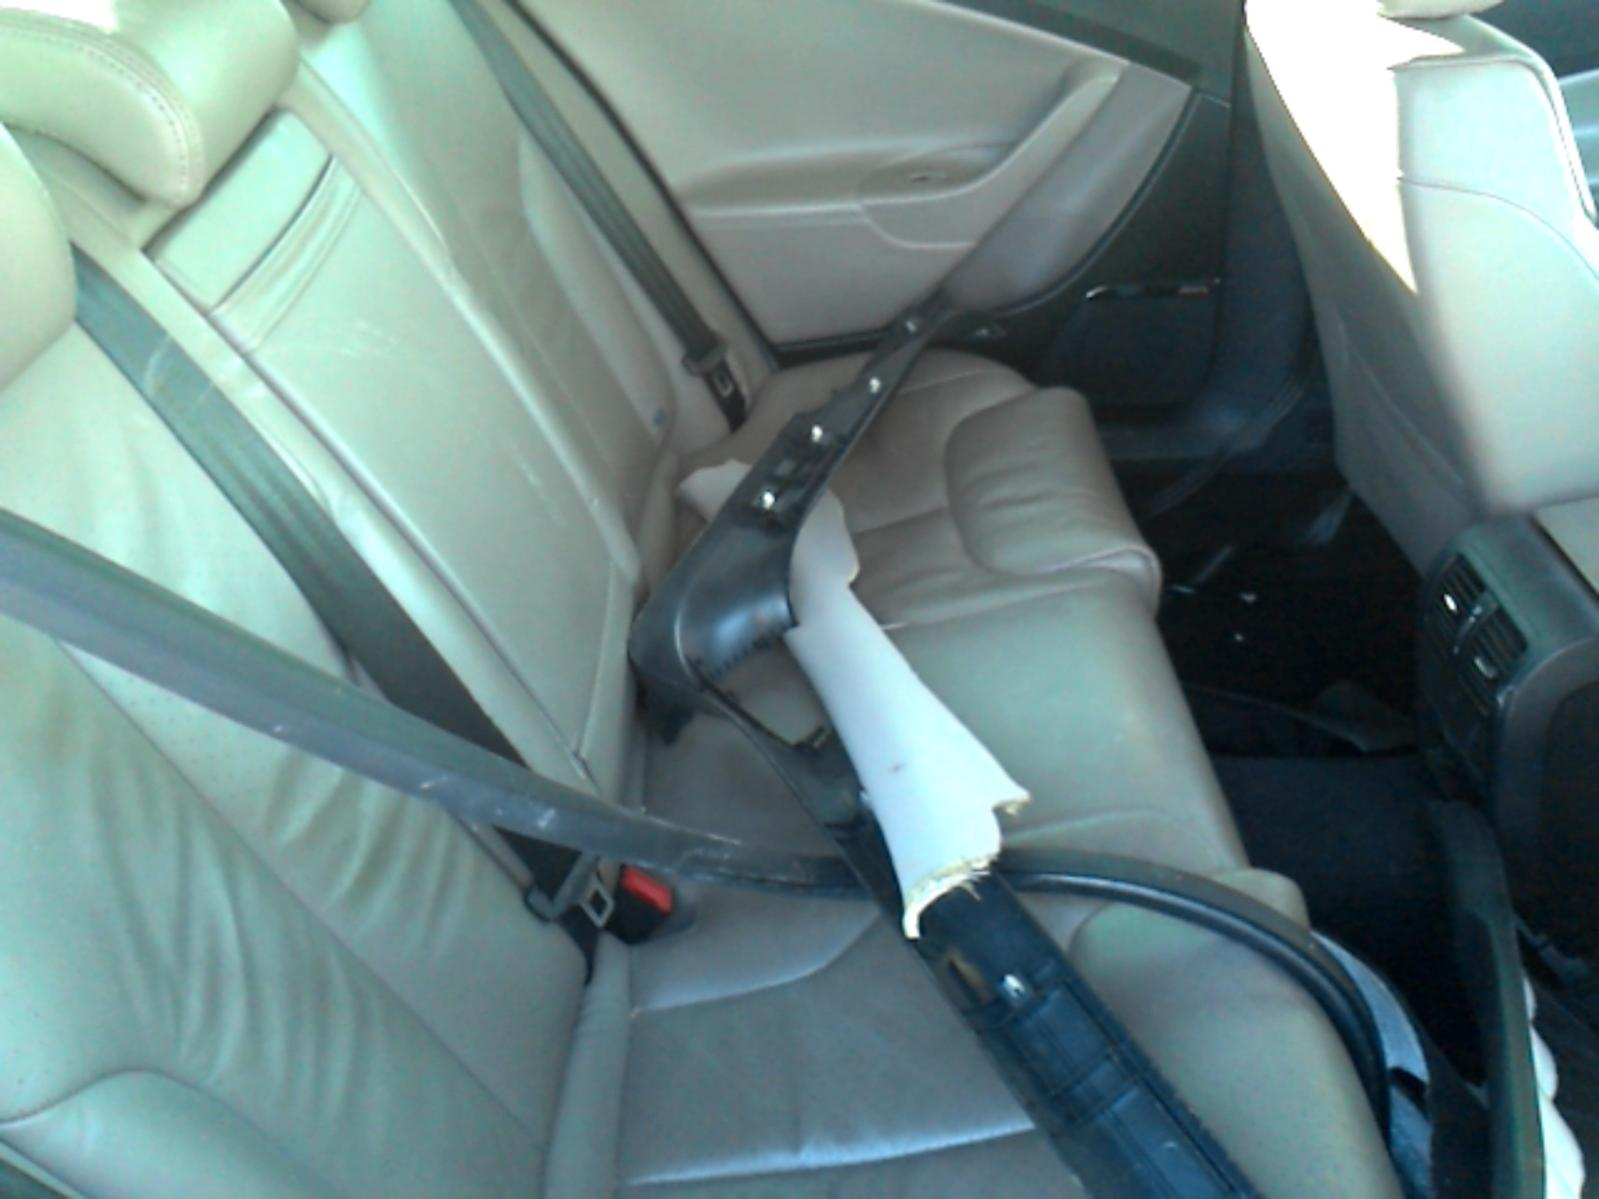 2007 Vw Passat Headlight Wiring Harness : Used headlight right passenger for sale a